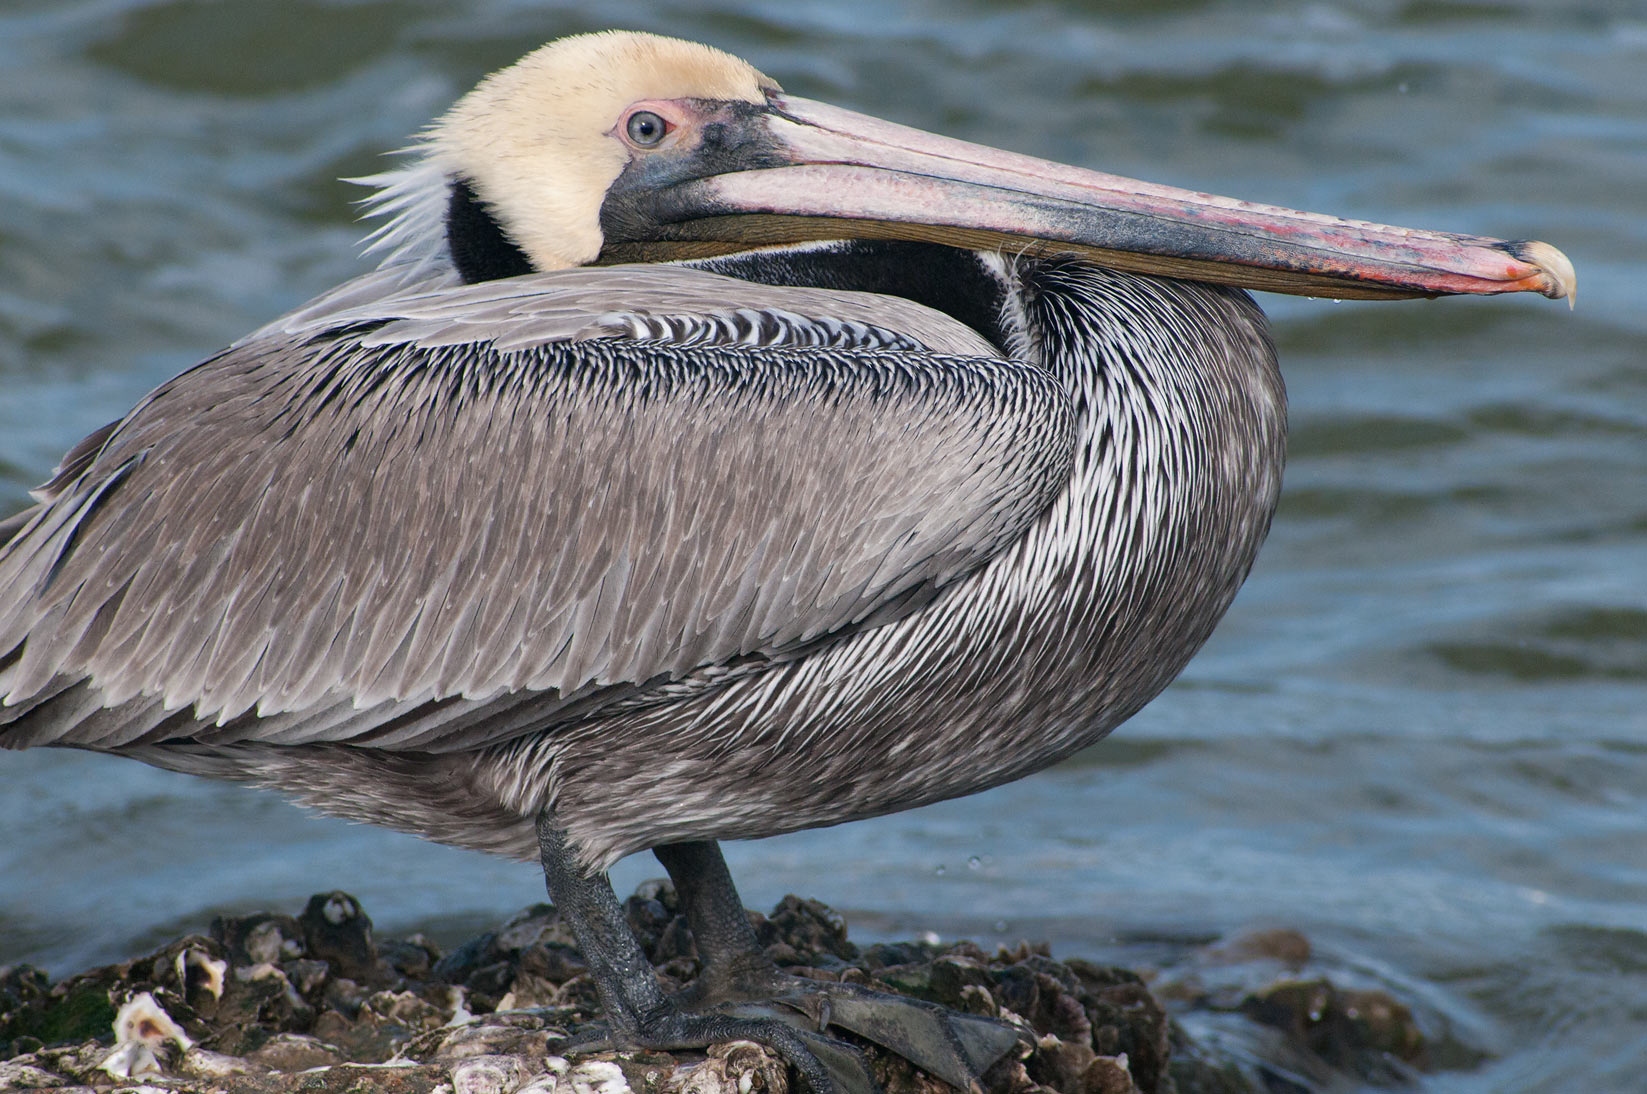 Brown pelican sitting on rocks at morning near Pier 21. Galveston, Texas